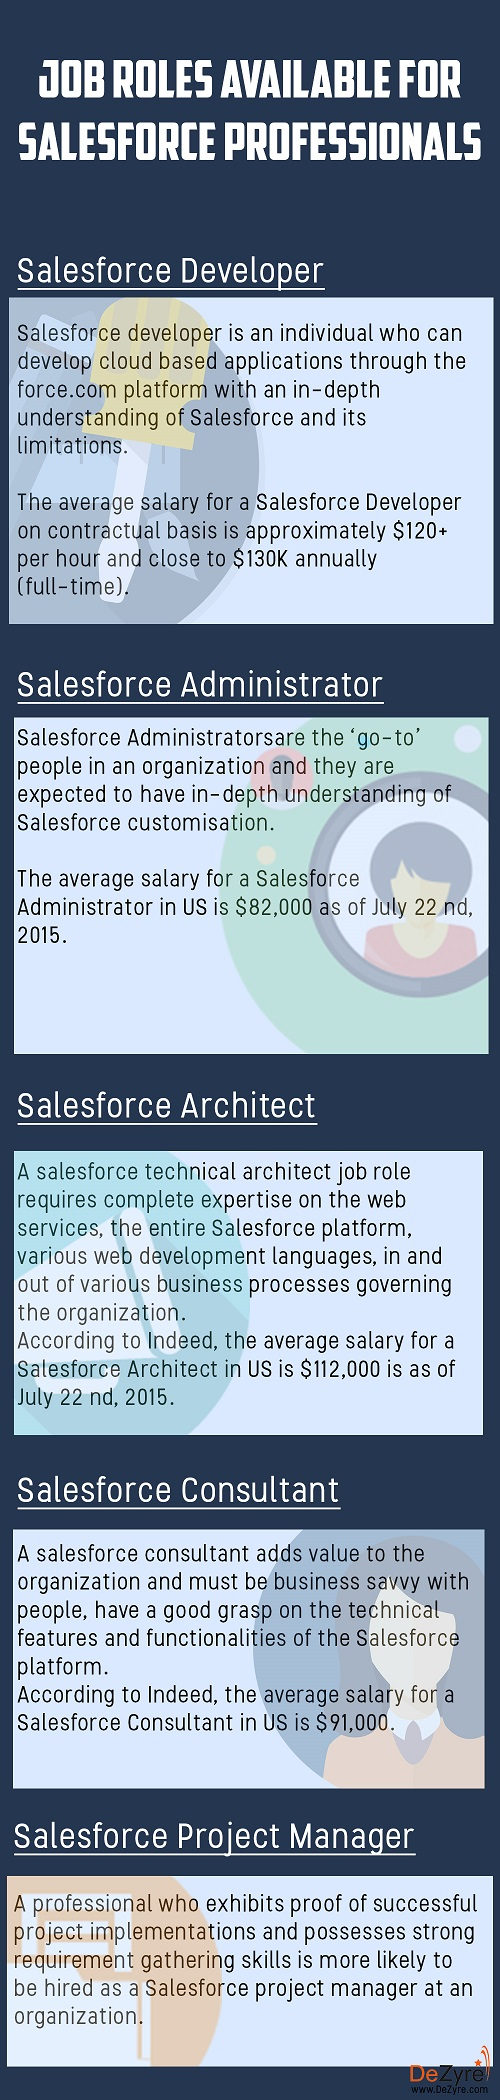 Job Roles for Salesforce Professionals